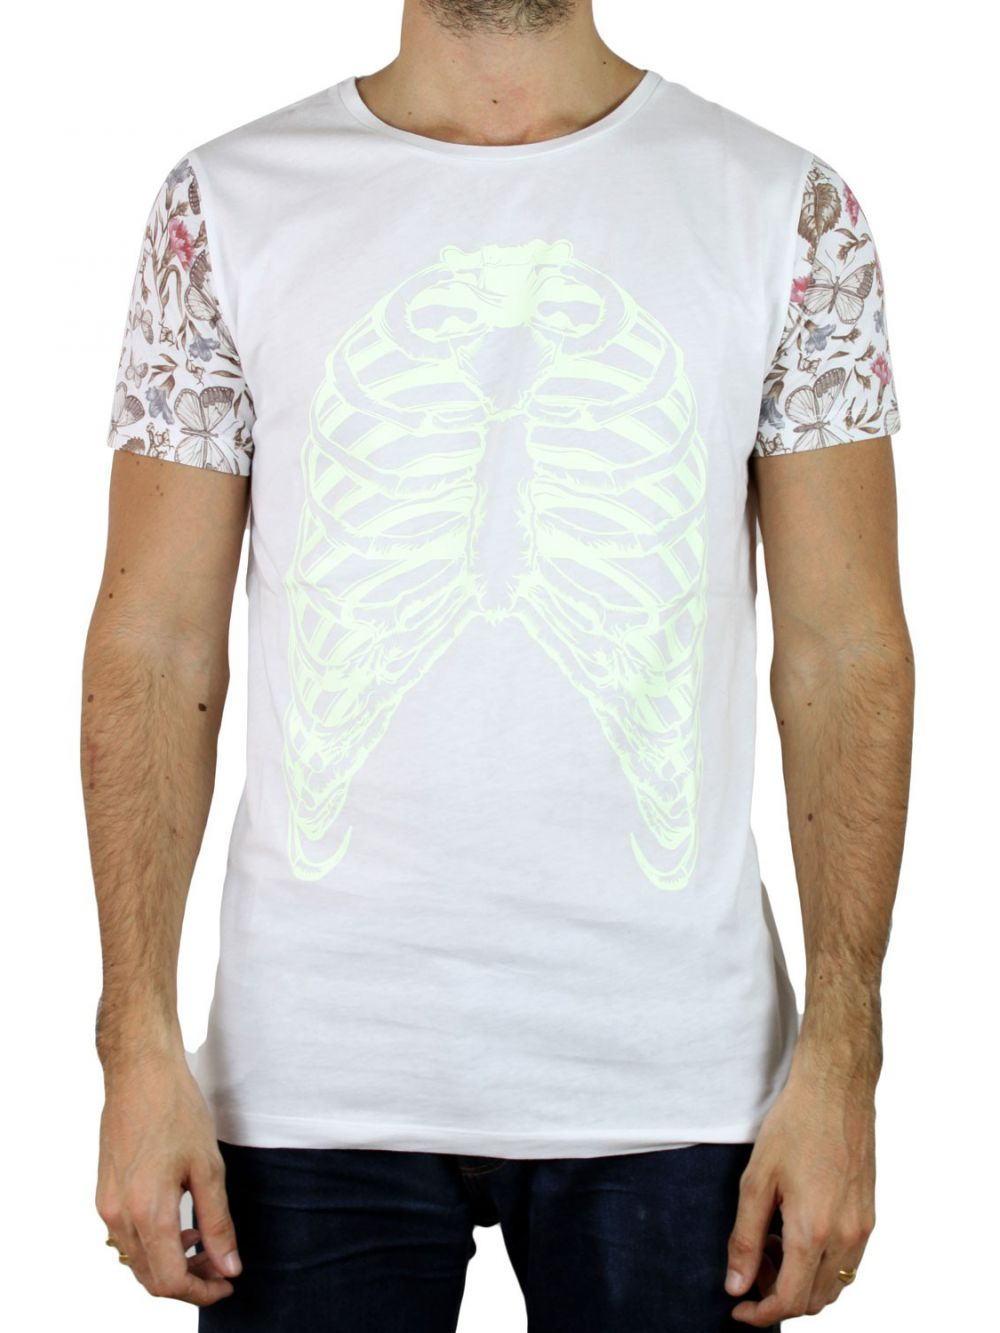 T-Shirt Bones and Butterfly